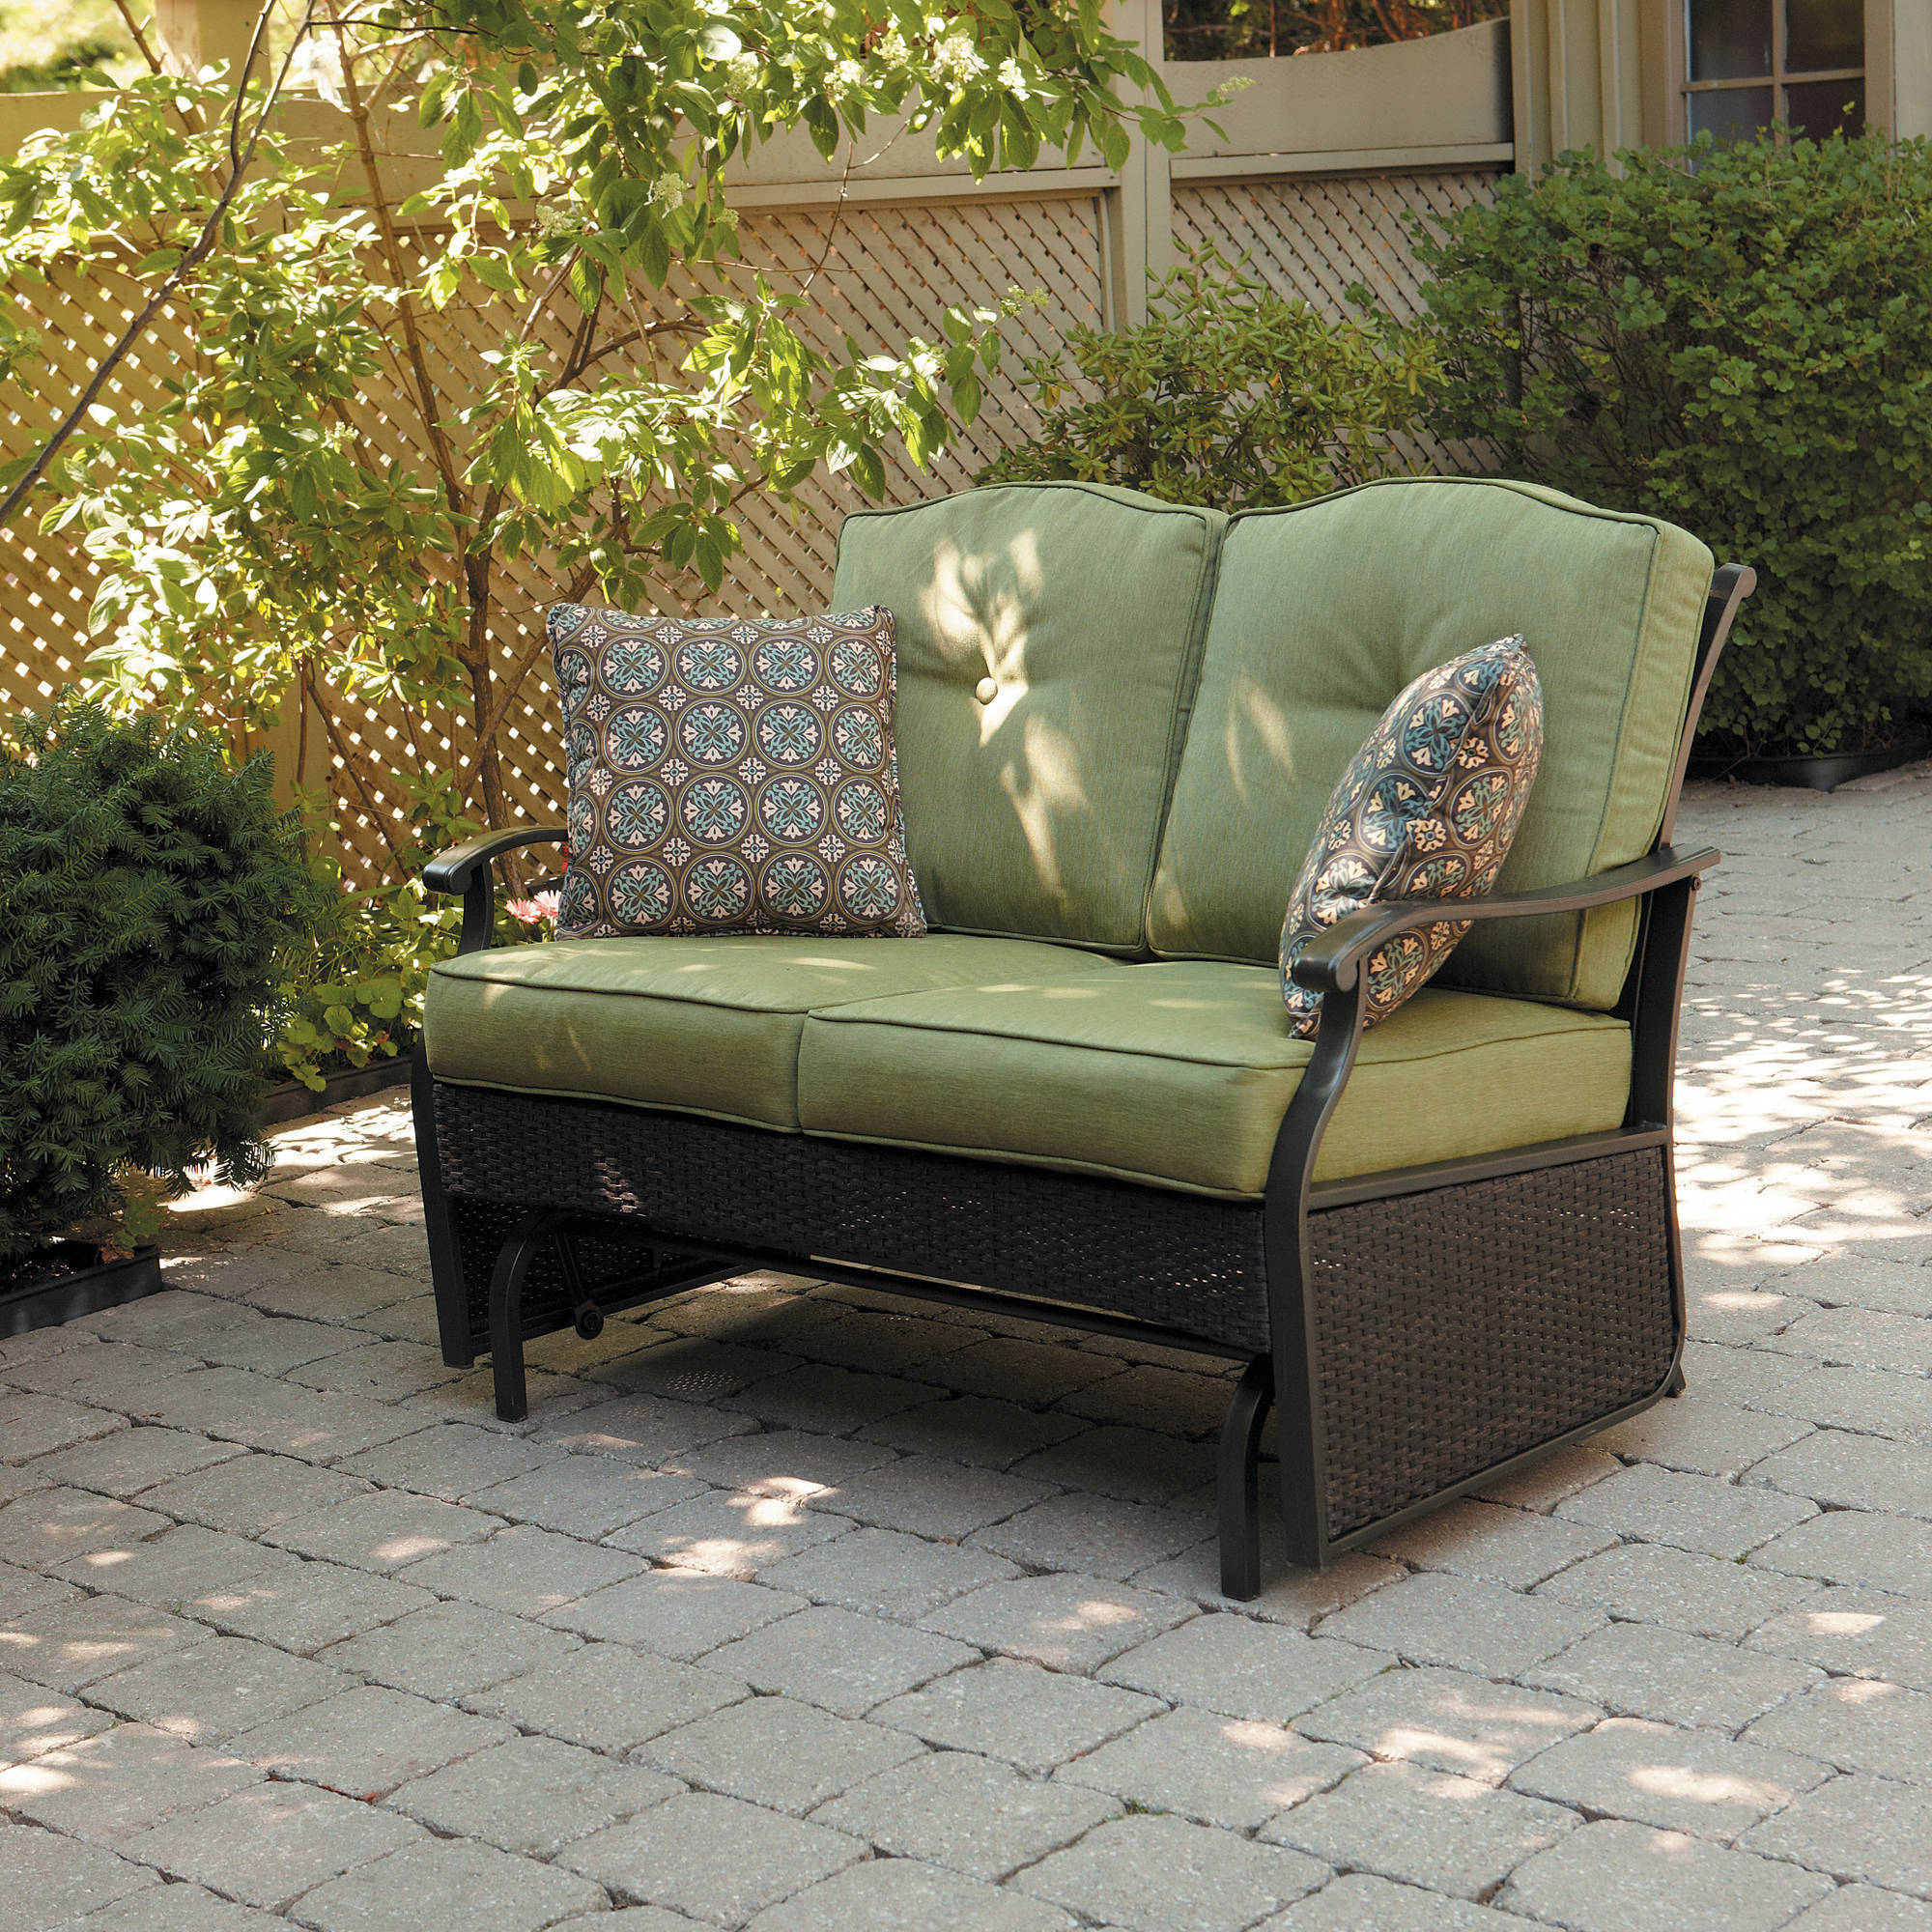 outdoor gliders better homes u0026 gardens providence 2-person outdoor glider loveseat -  walmart.com RRYBWEO